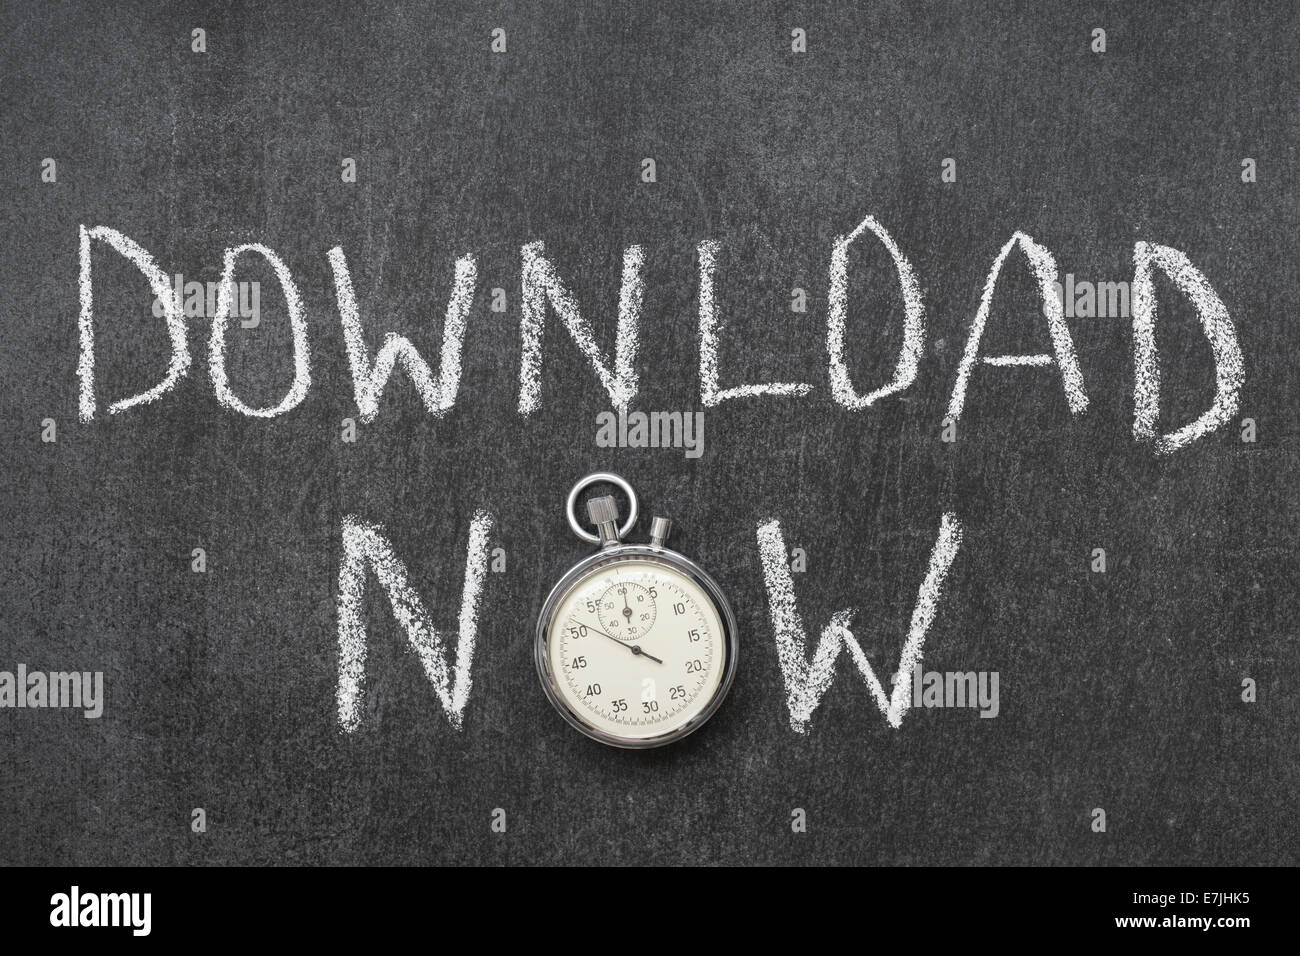 download now concept handwritten on chalkboard with vintage precise stopwatch used instead of O - Stock Image